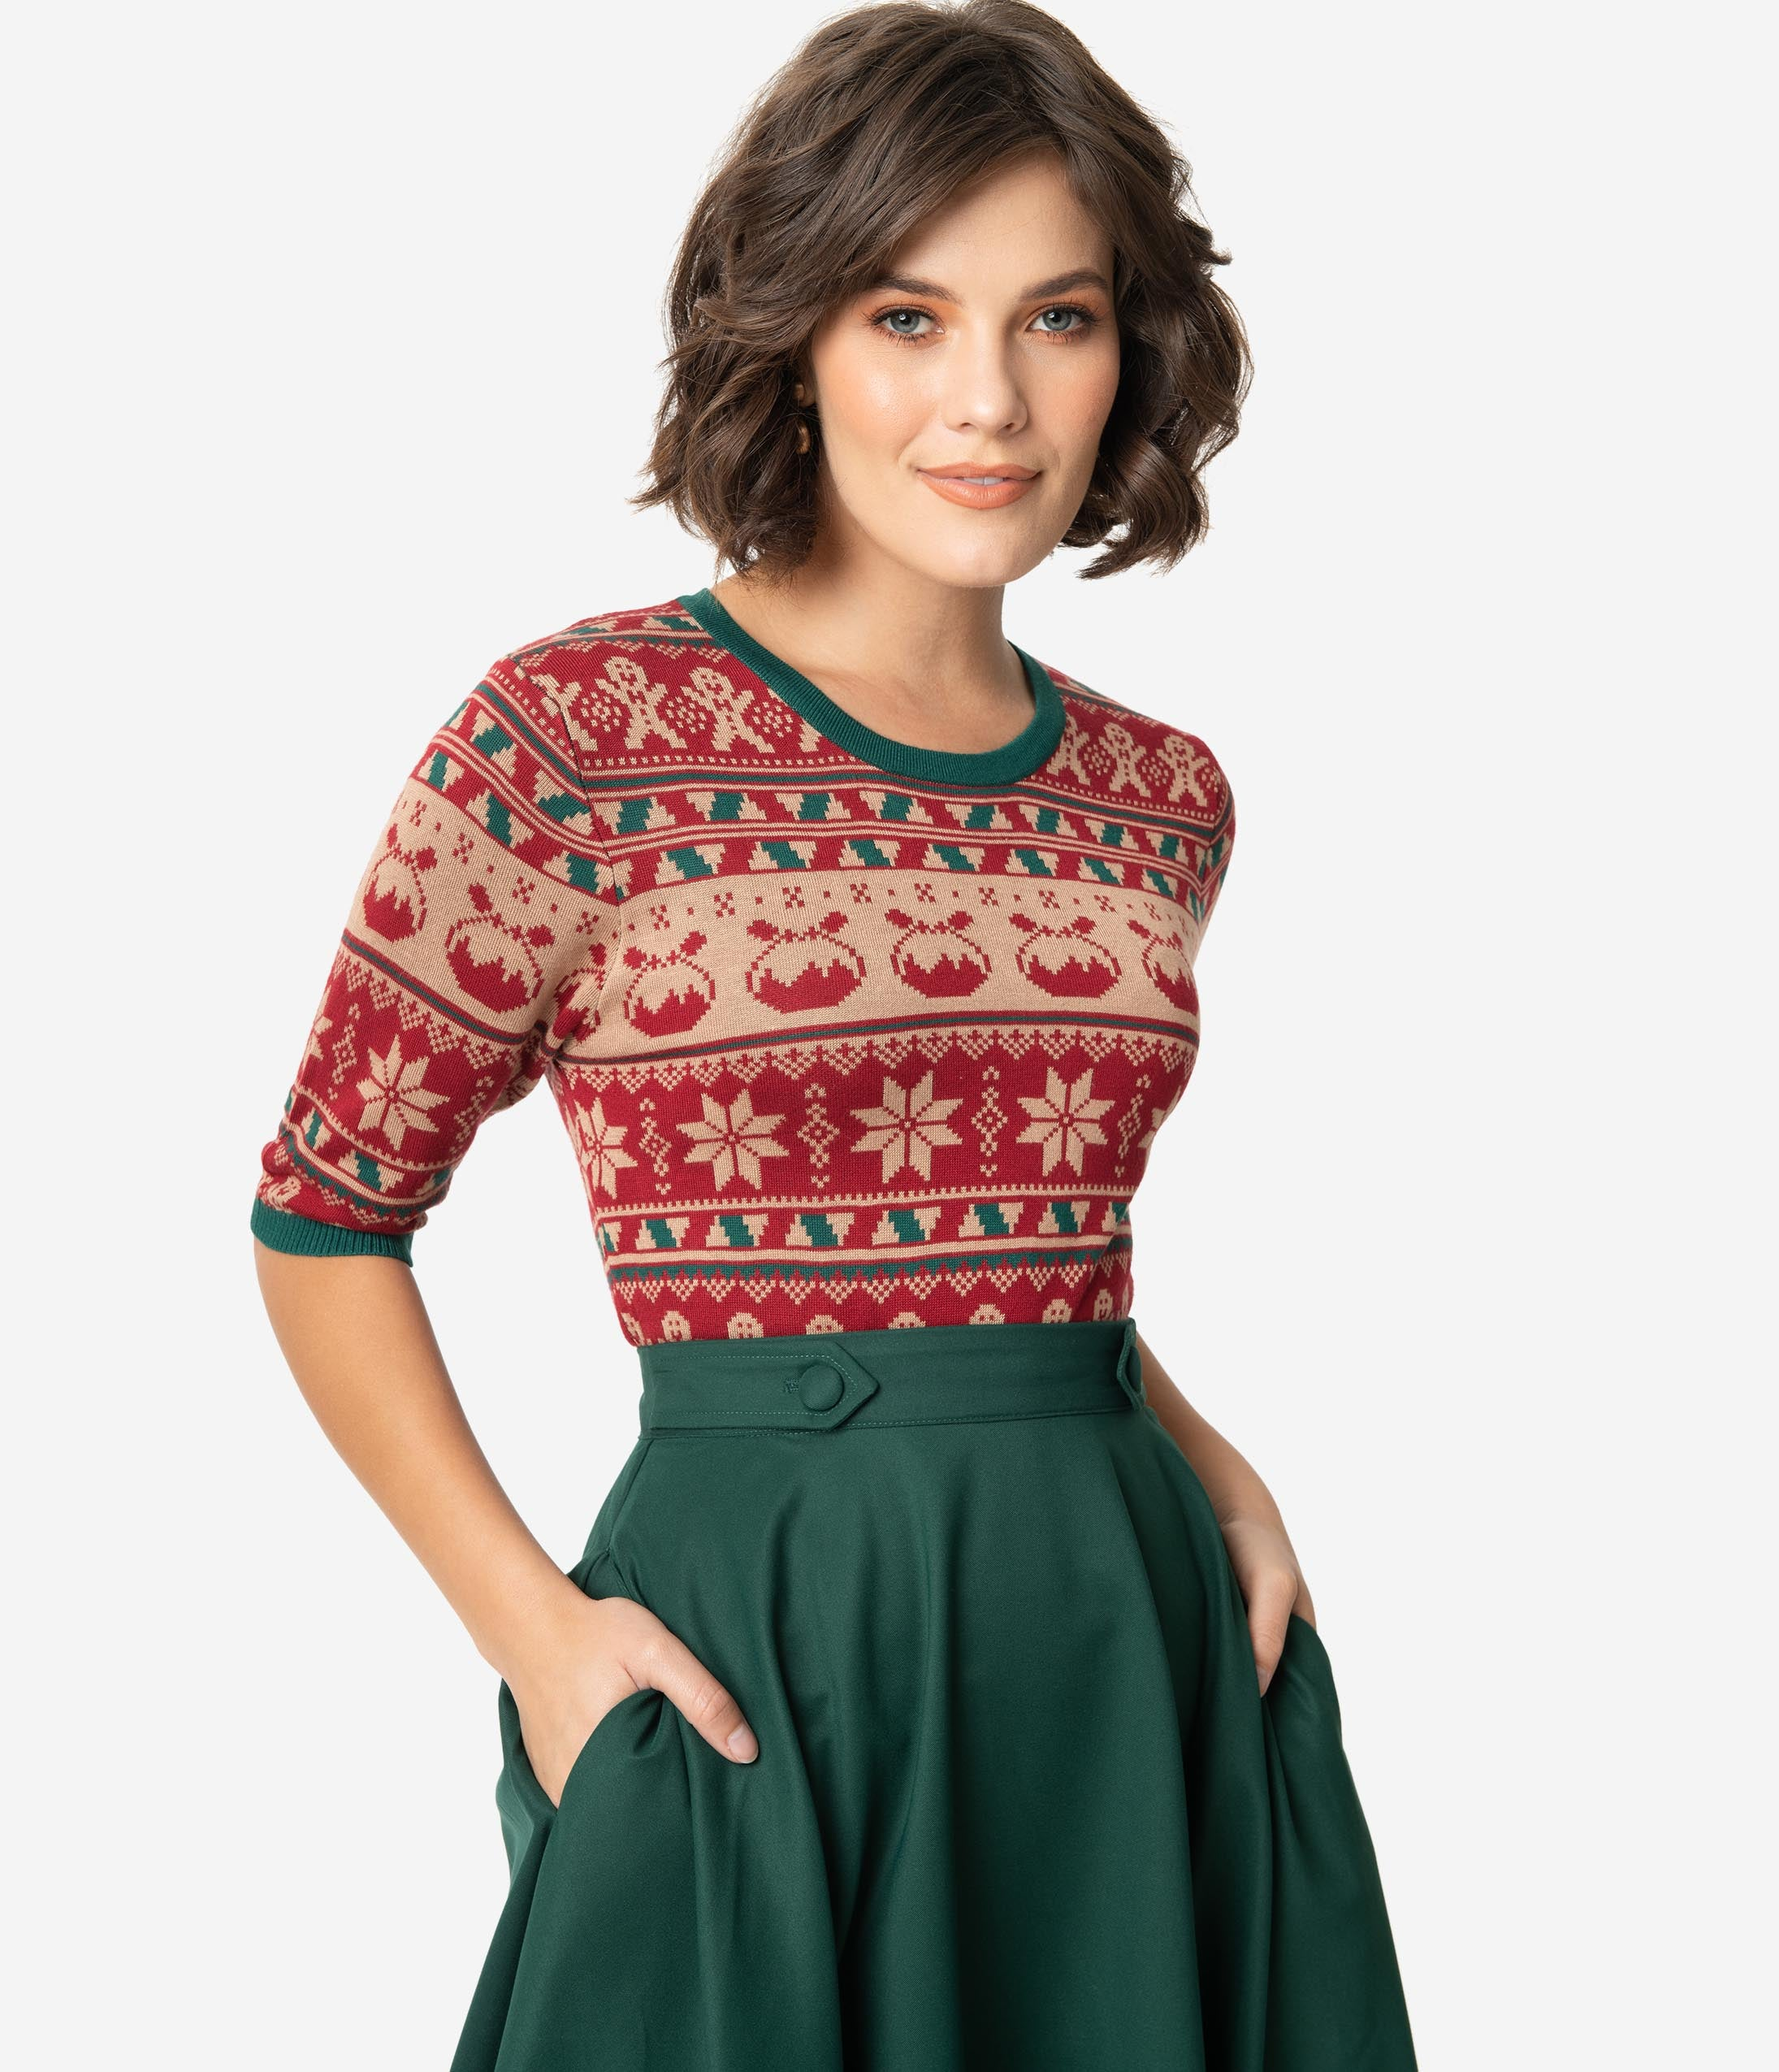 1930s Style Blouses, Shirts, Tops | Vintage Blouses Retro Style Red  Green Holiday Fair Isle Knit Sweater $58.00 AT vintagedancer.com